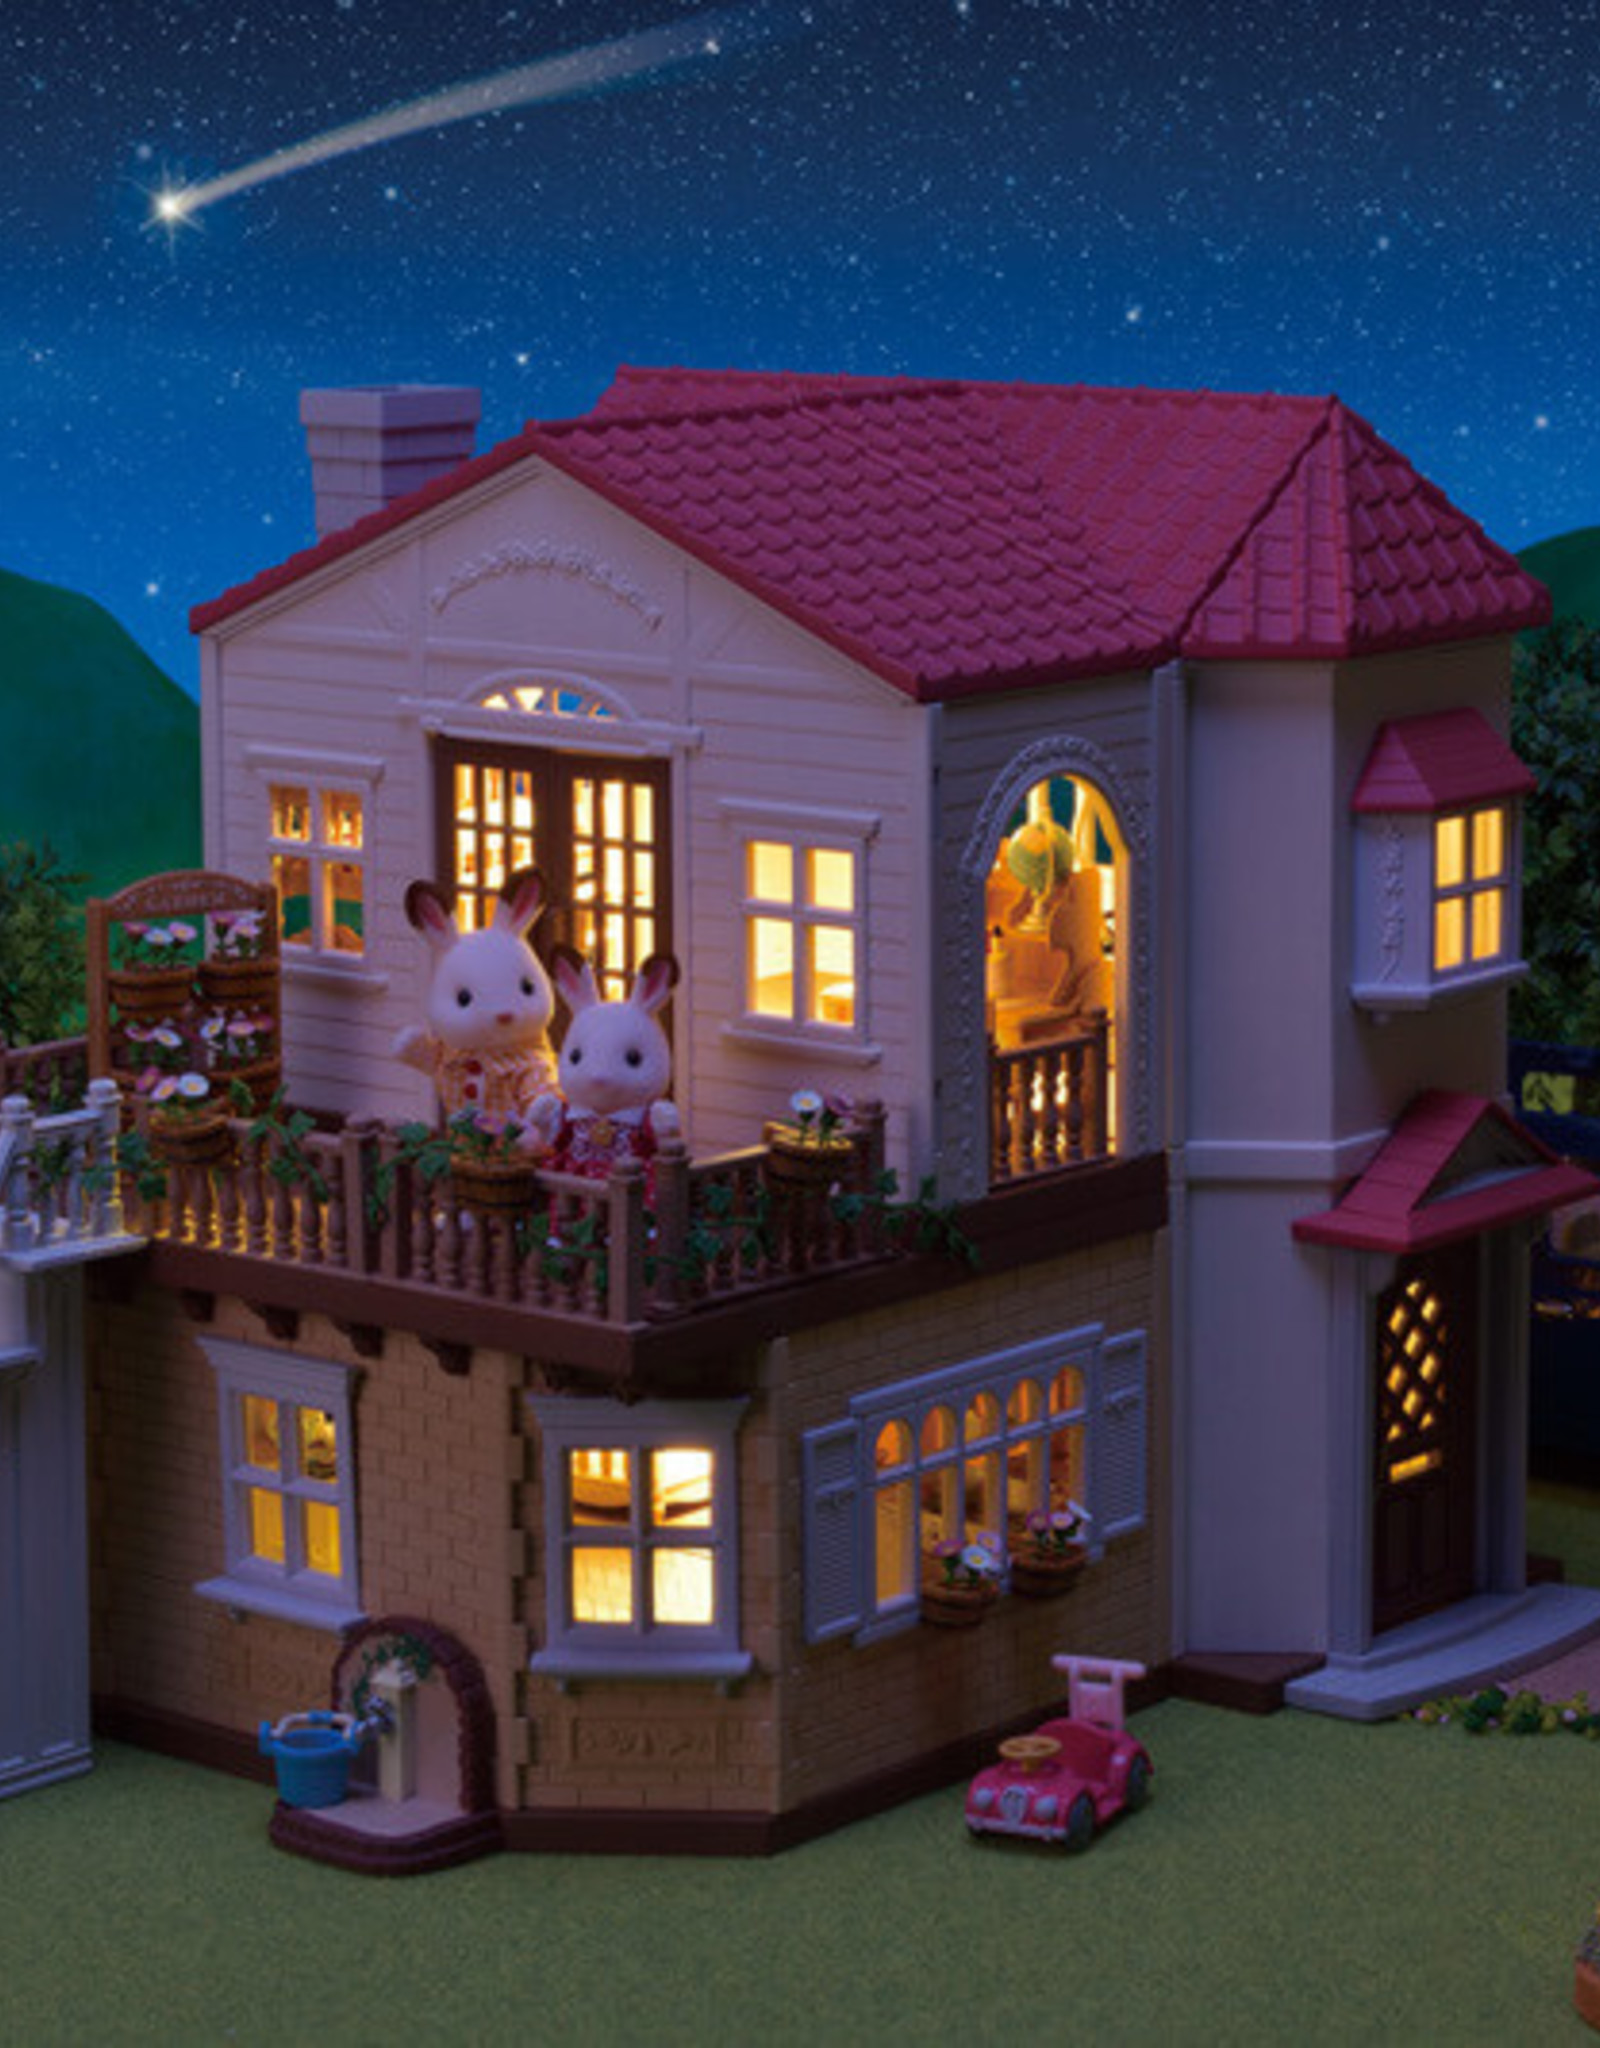 Calico Critters CC Red Roof Country Home